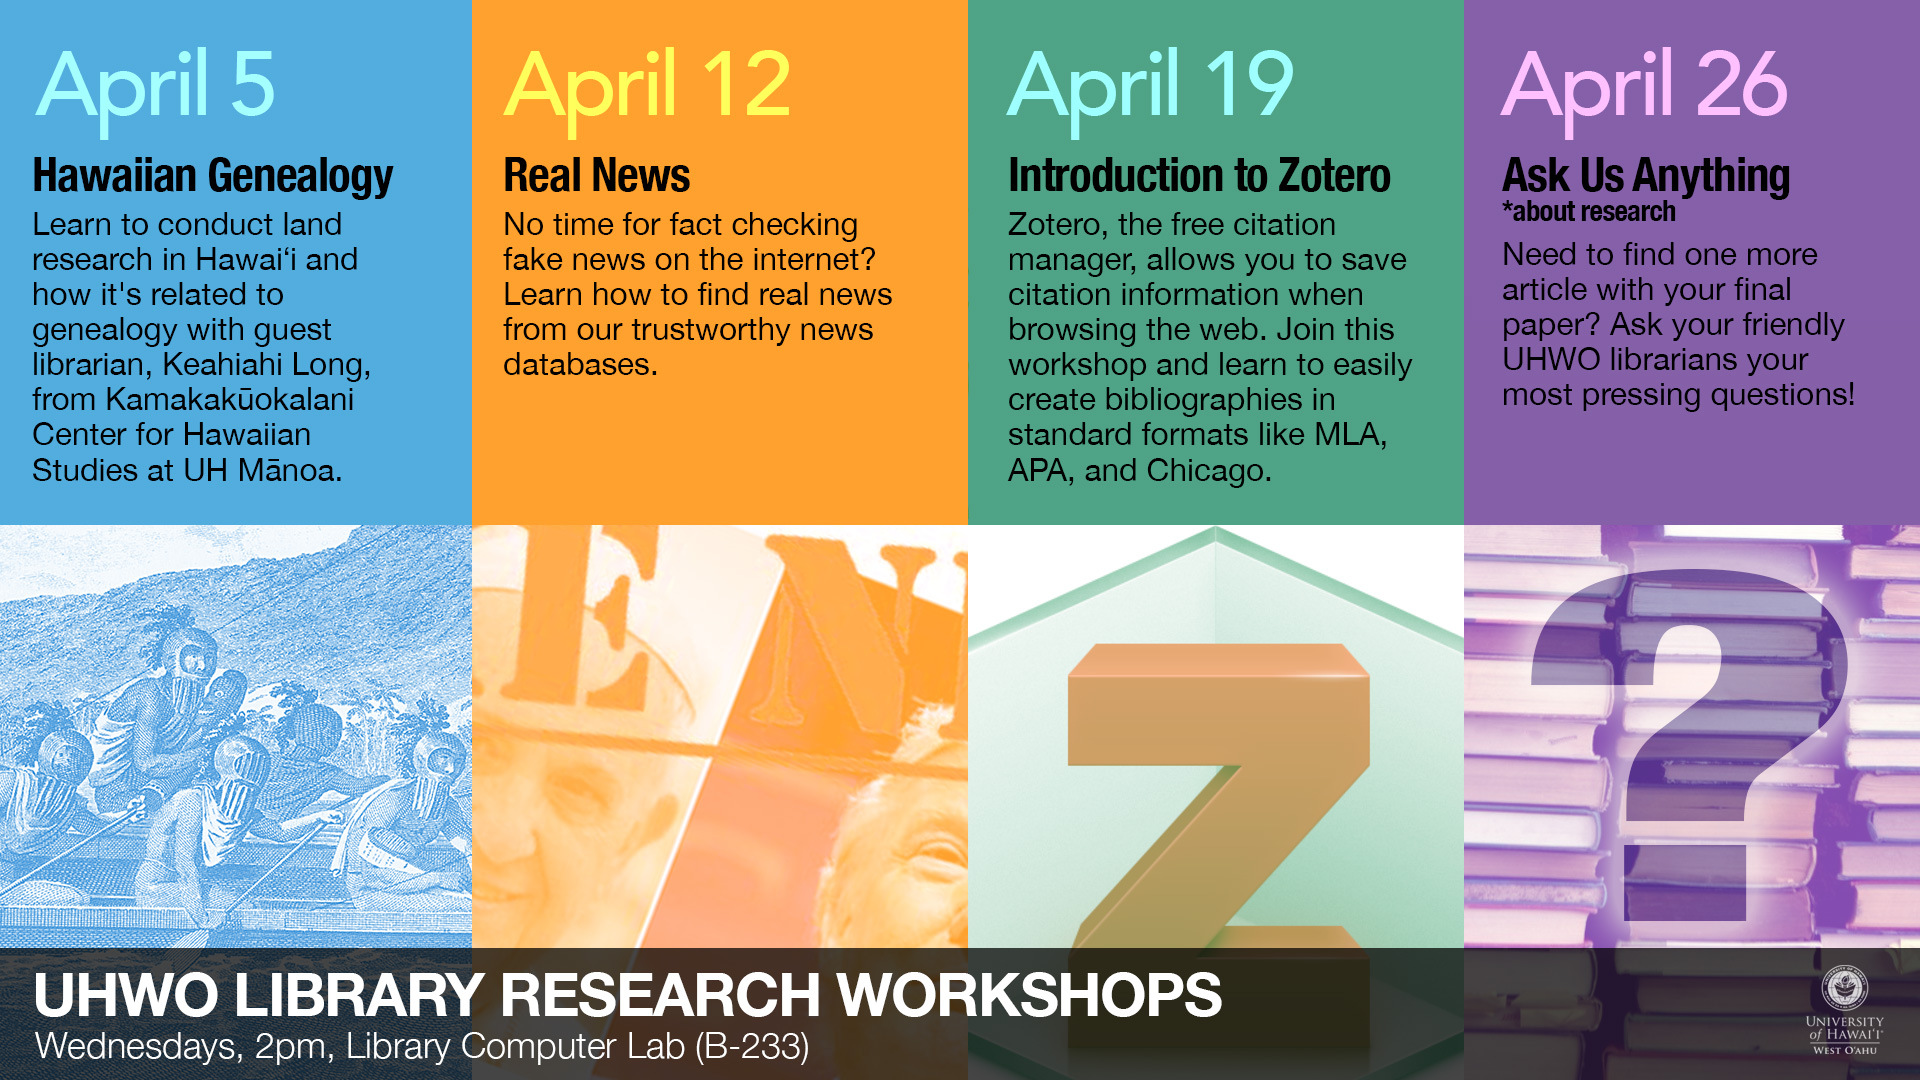 Library Workshops in April 2017